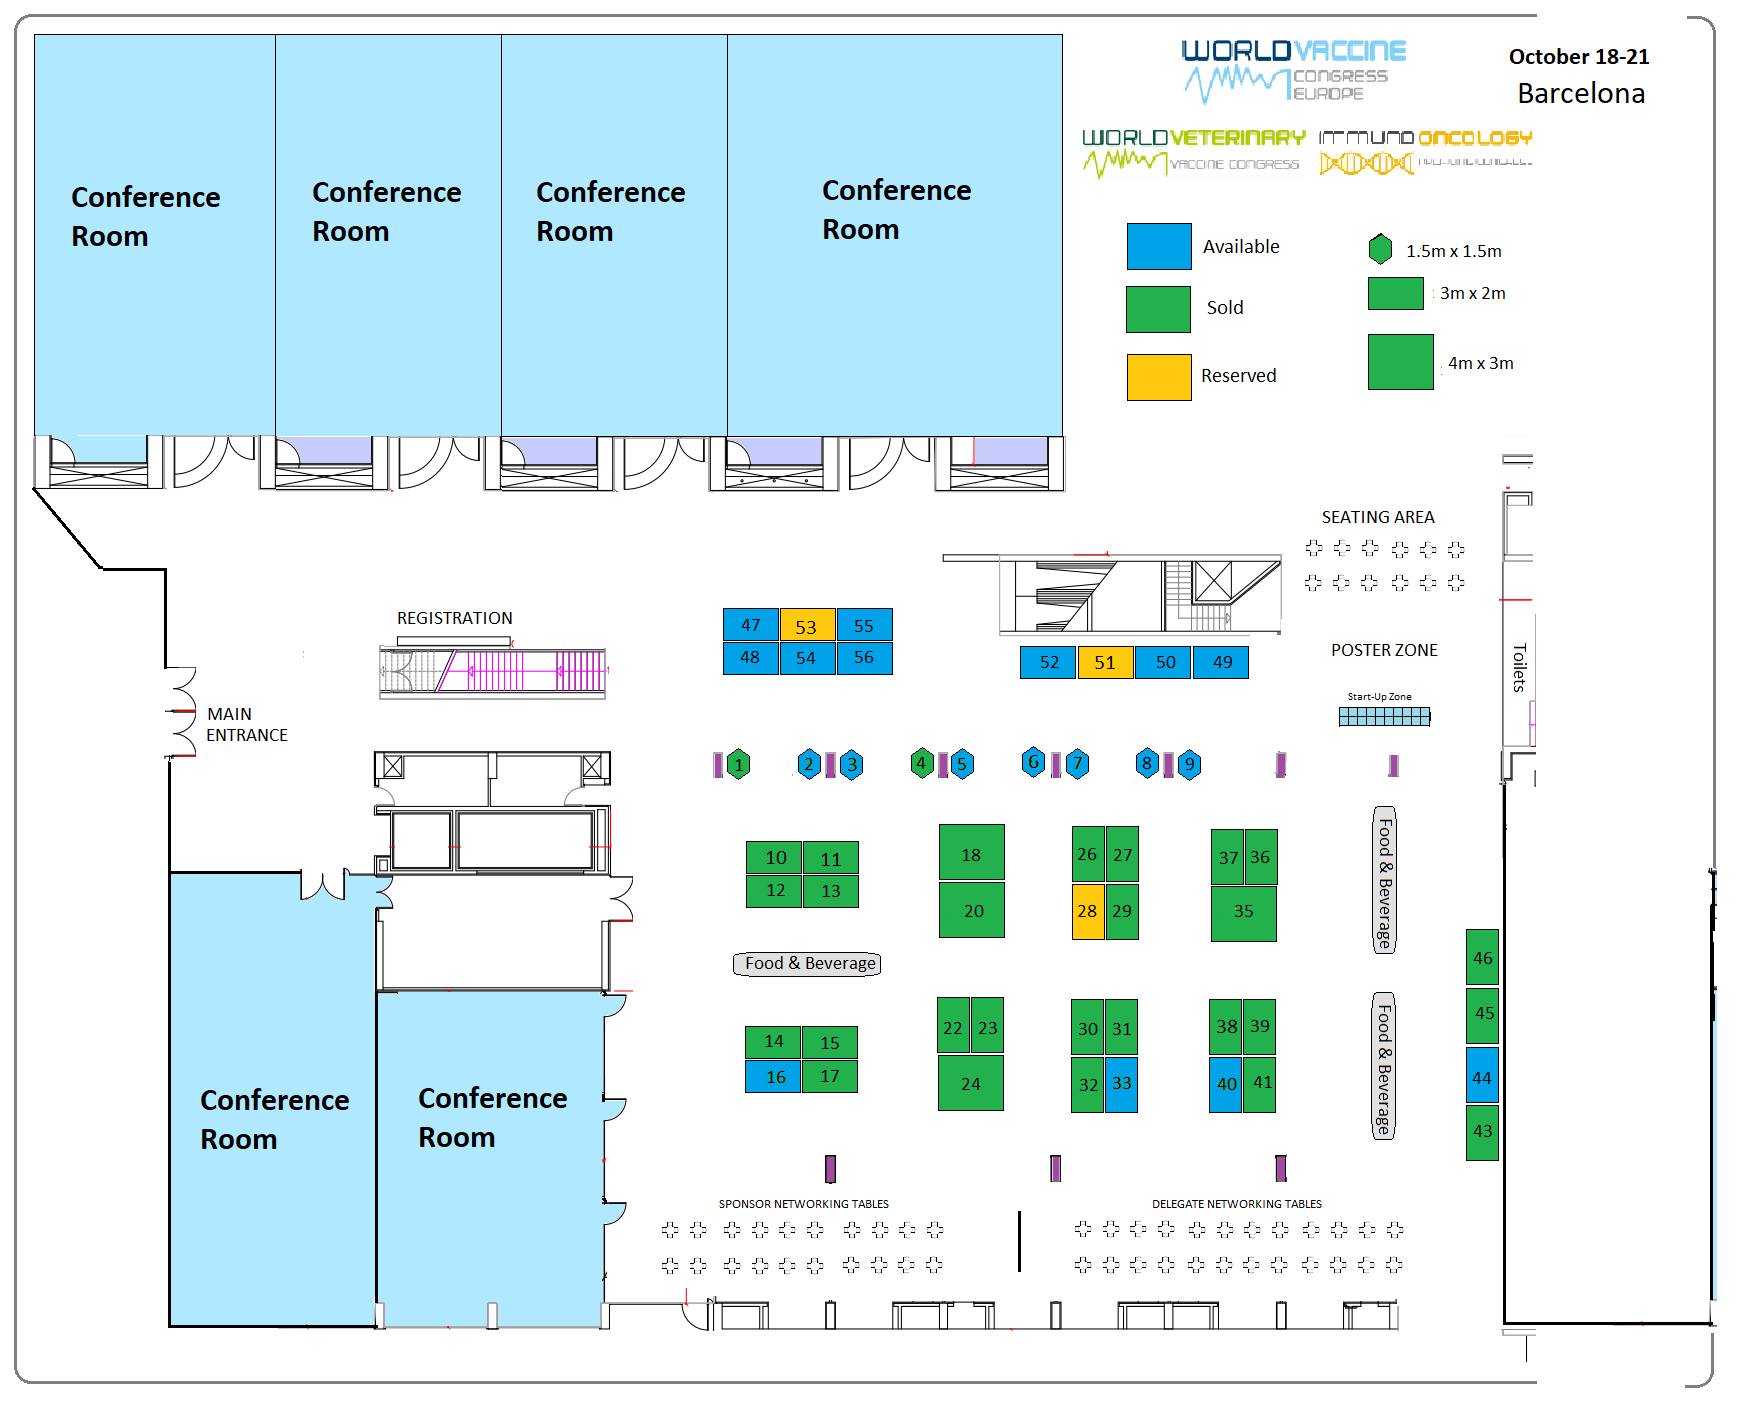 Vaccine congress Europe 2020 floorplan